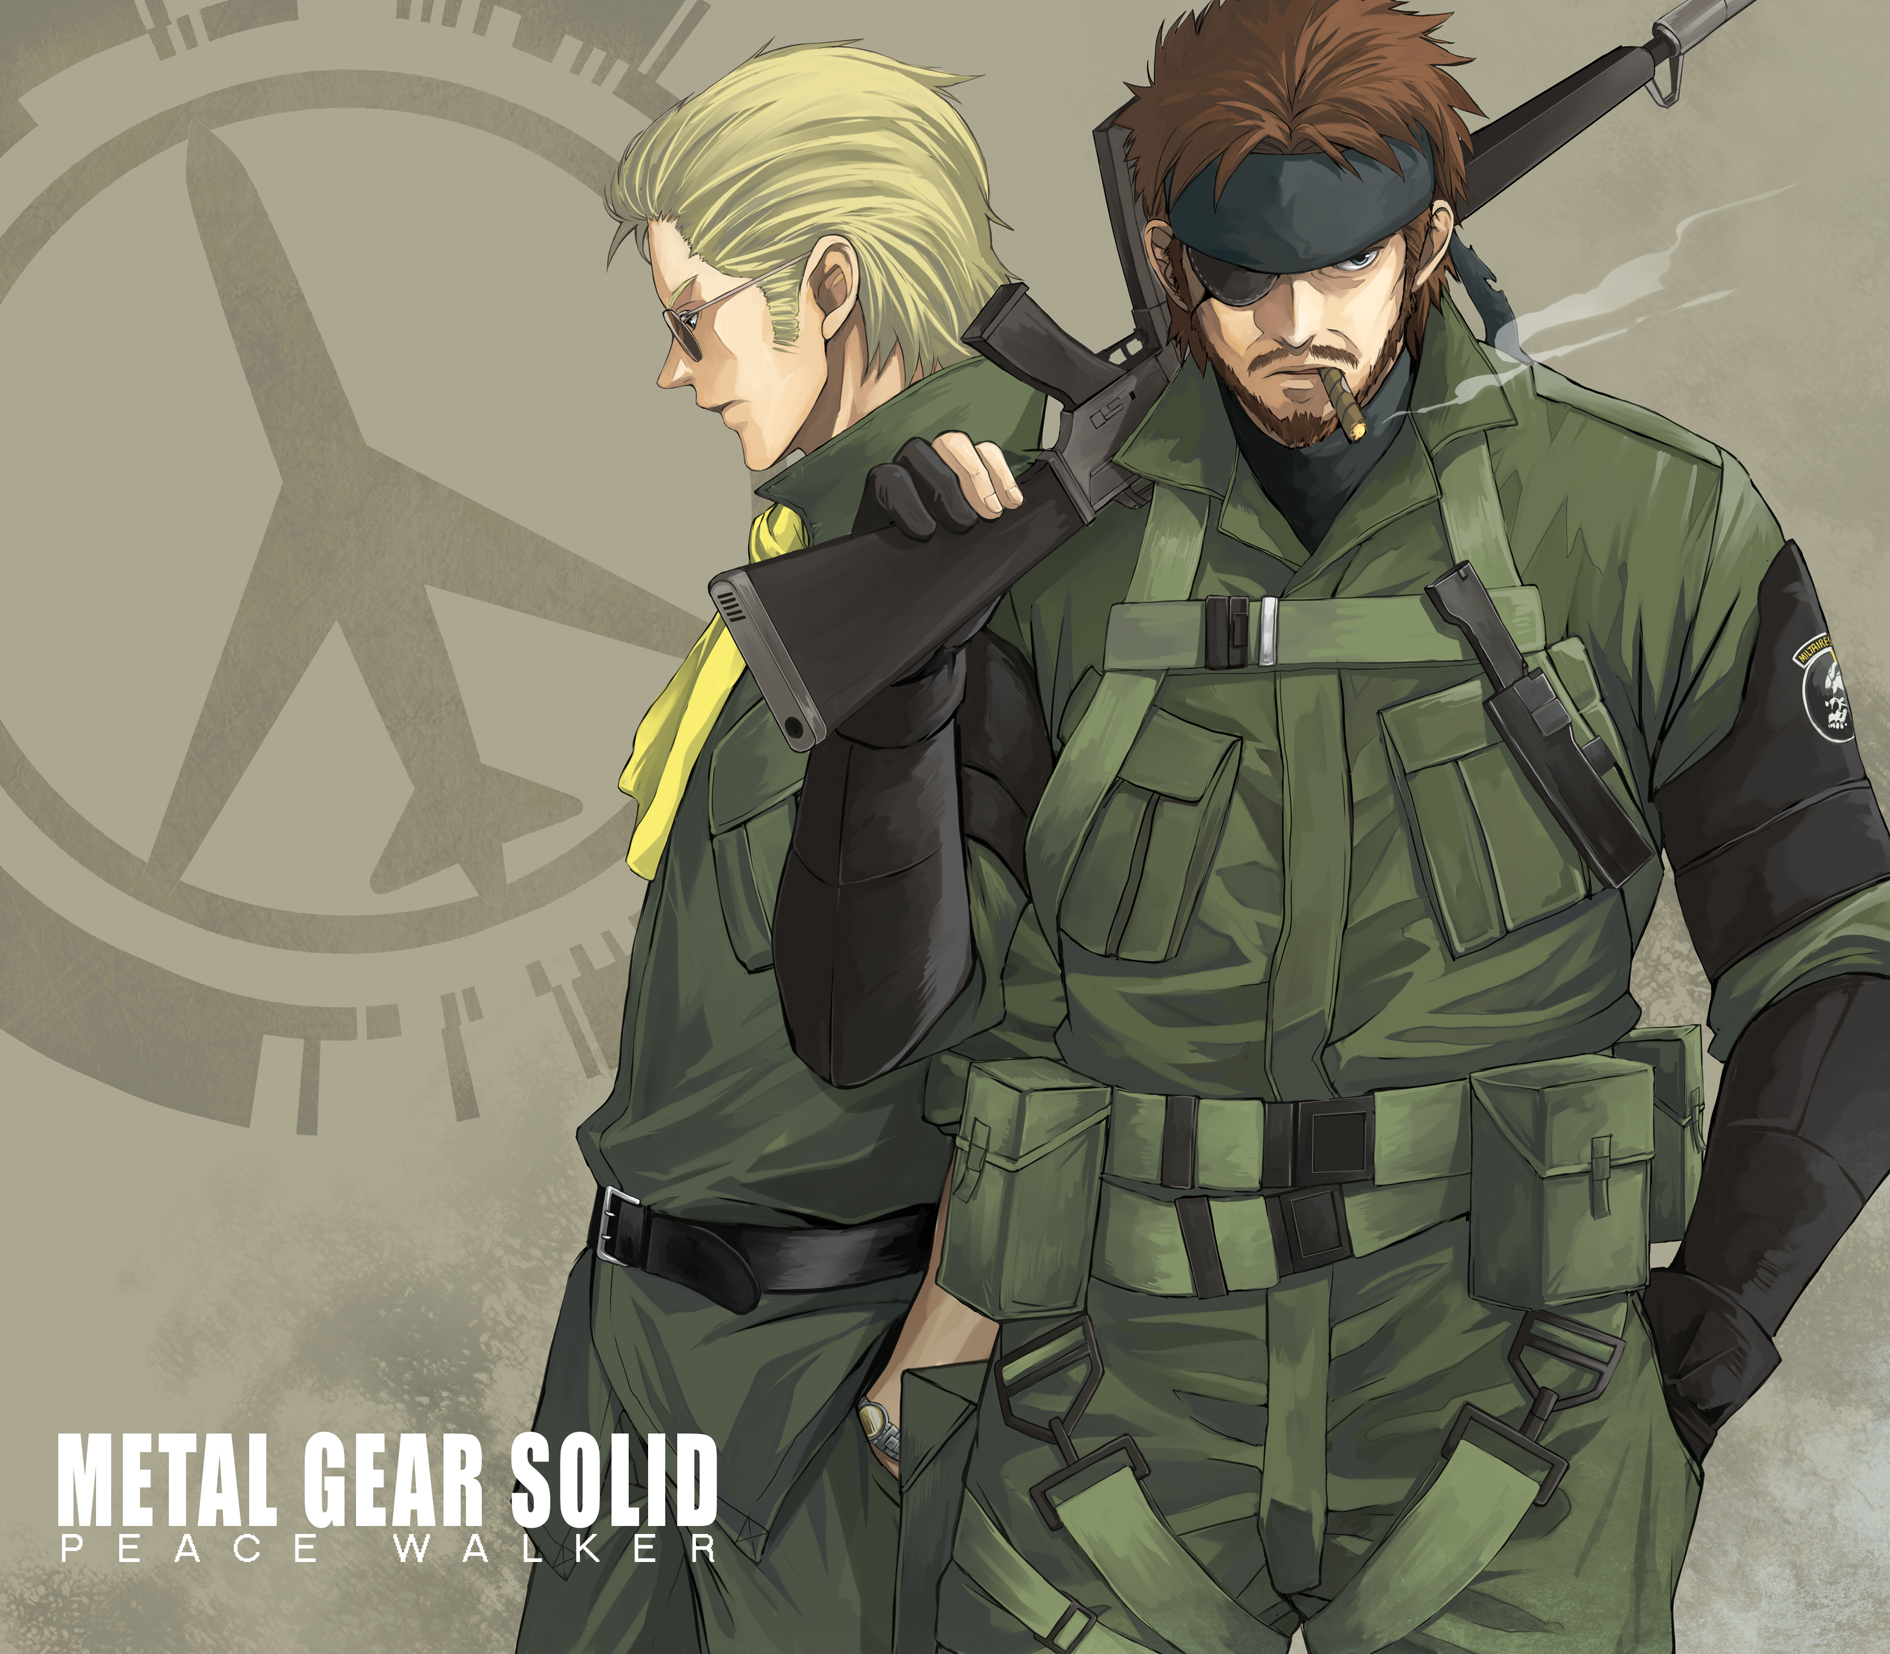 Big Boss Naked Snake And Kazuhira Miller Metal Gear And 1 More Danbooru Fanart sketch of kazuhira miller/benedict miller/mcdonell miller from the popular video game franchise, metal gear solid. big boss naked snake and kazuhira